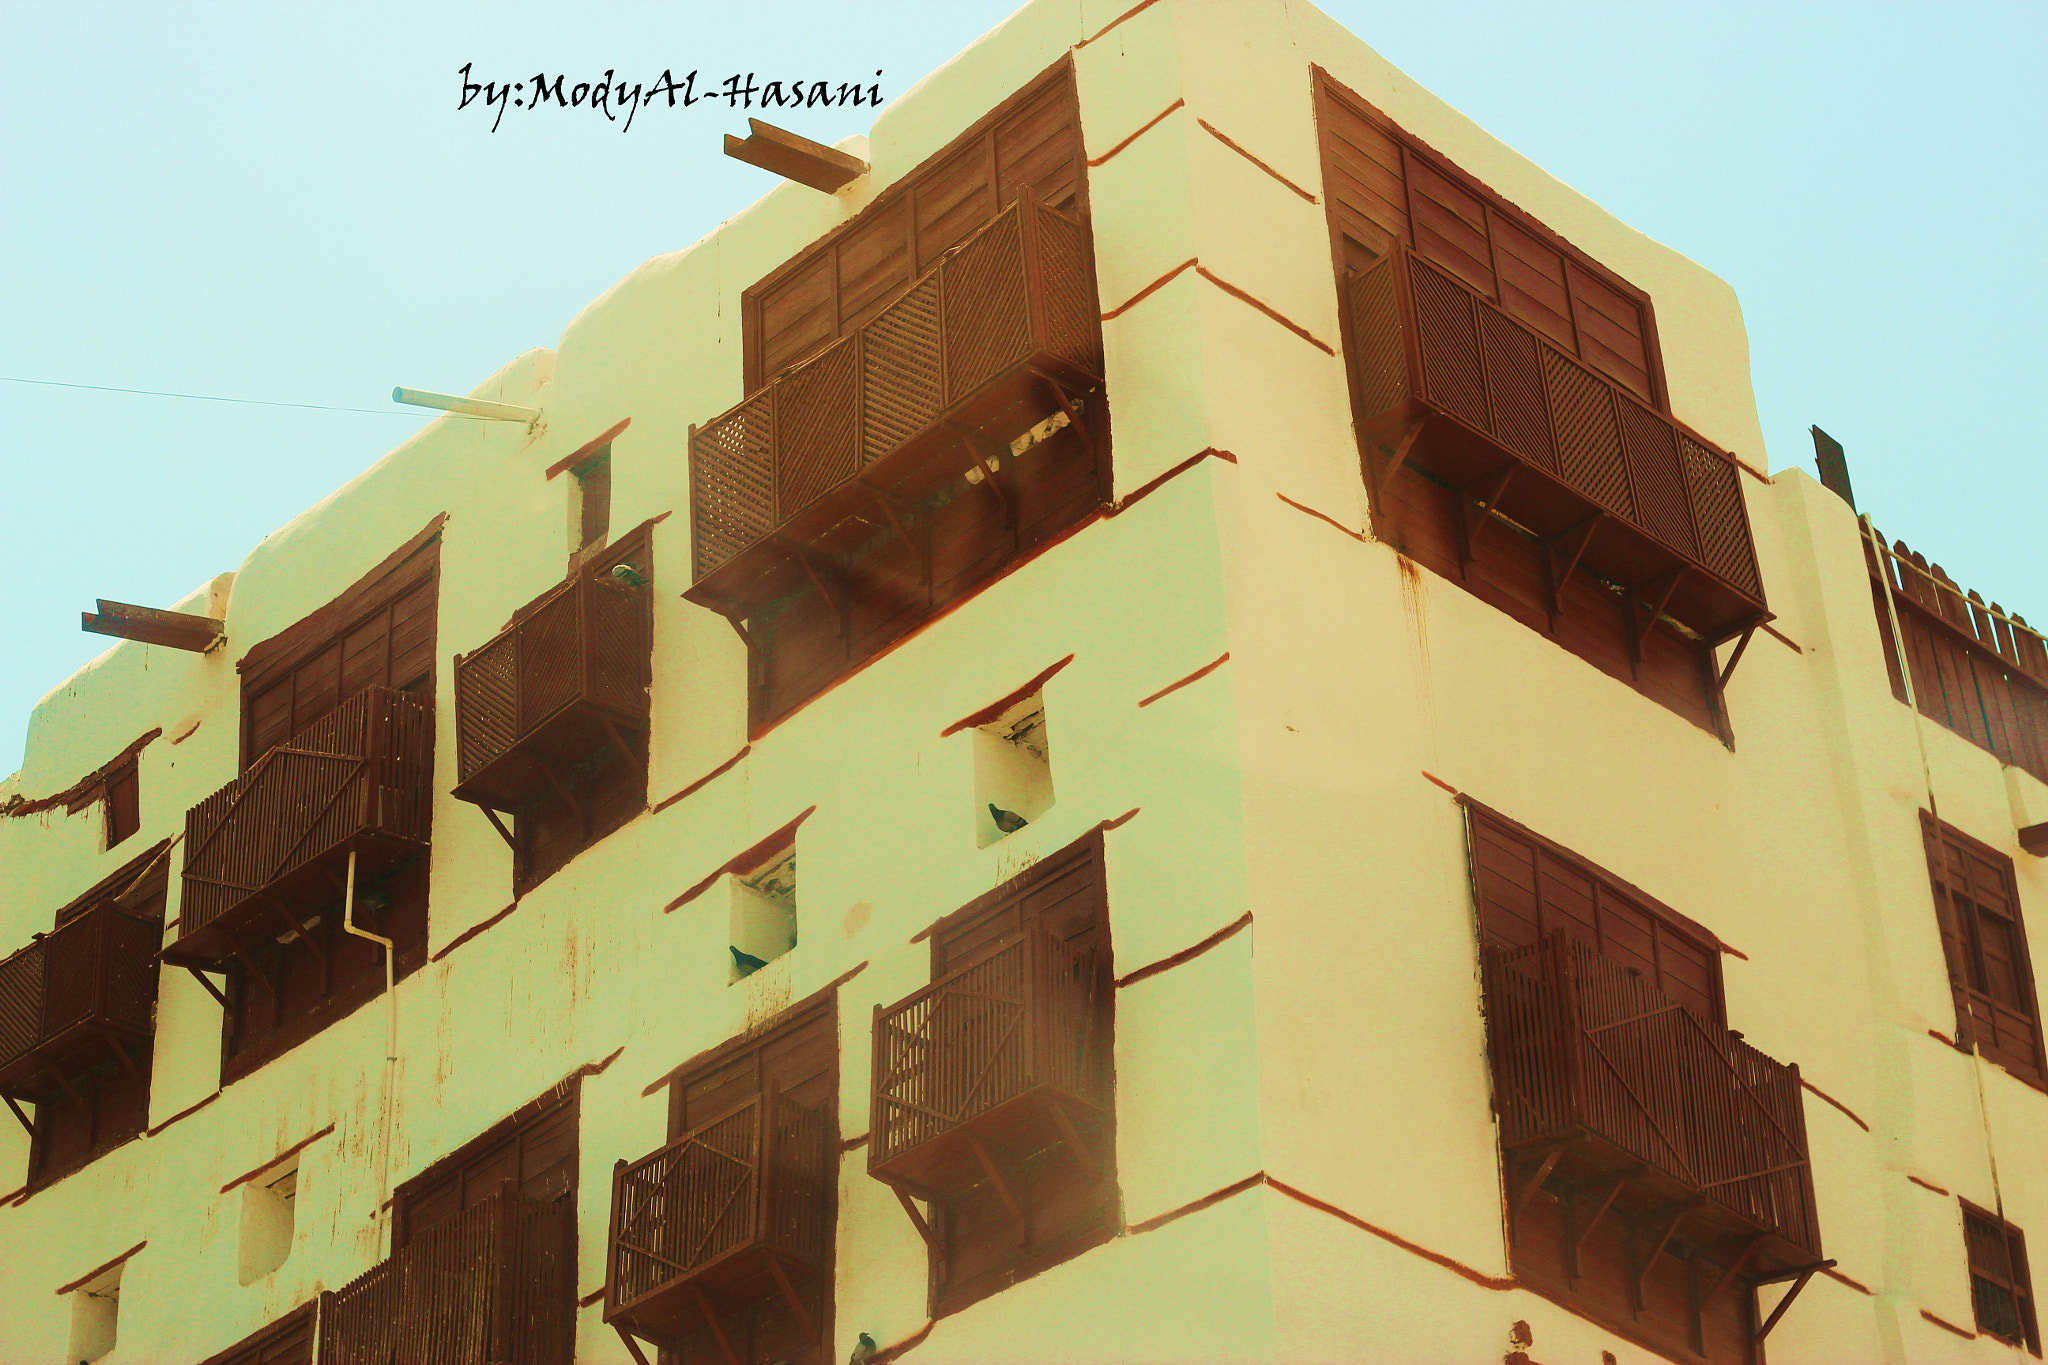 Photograph Jeddah city old 6 by Mohammed Al-Hasani on 500px